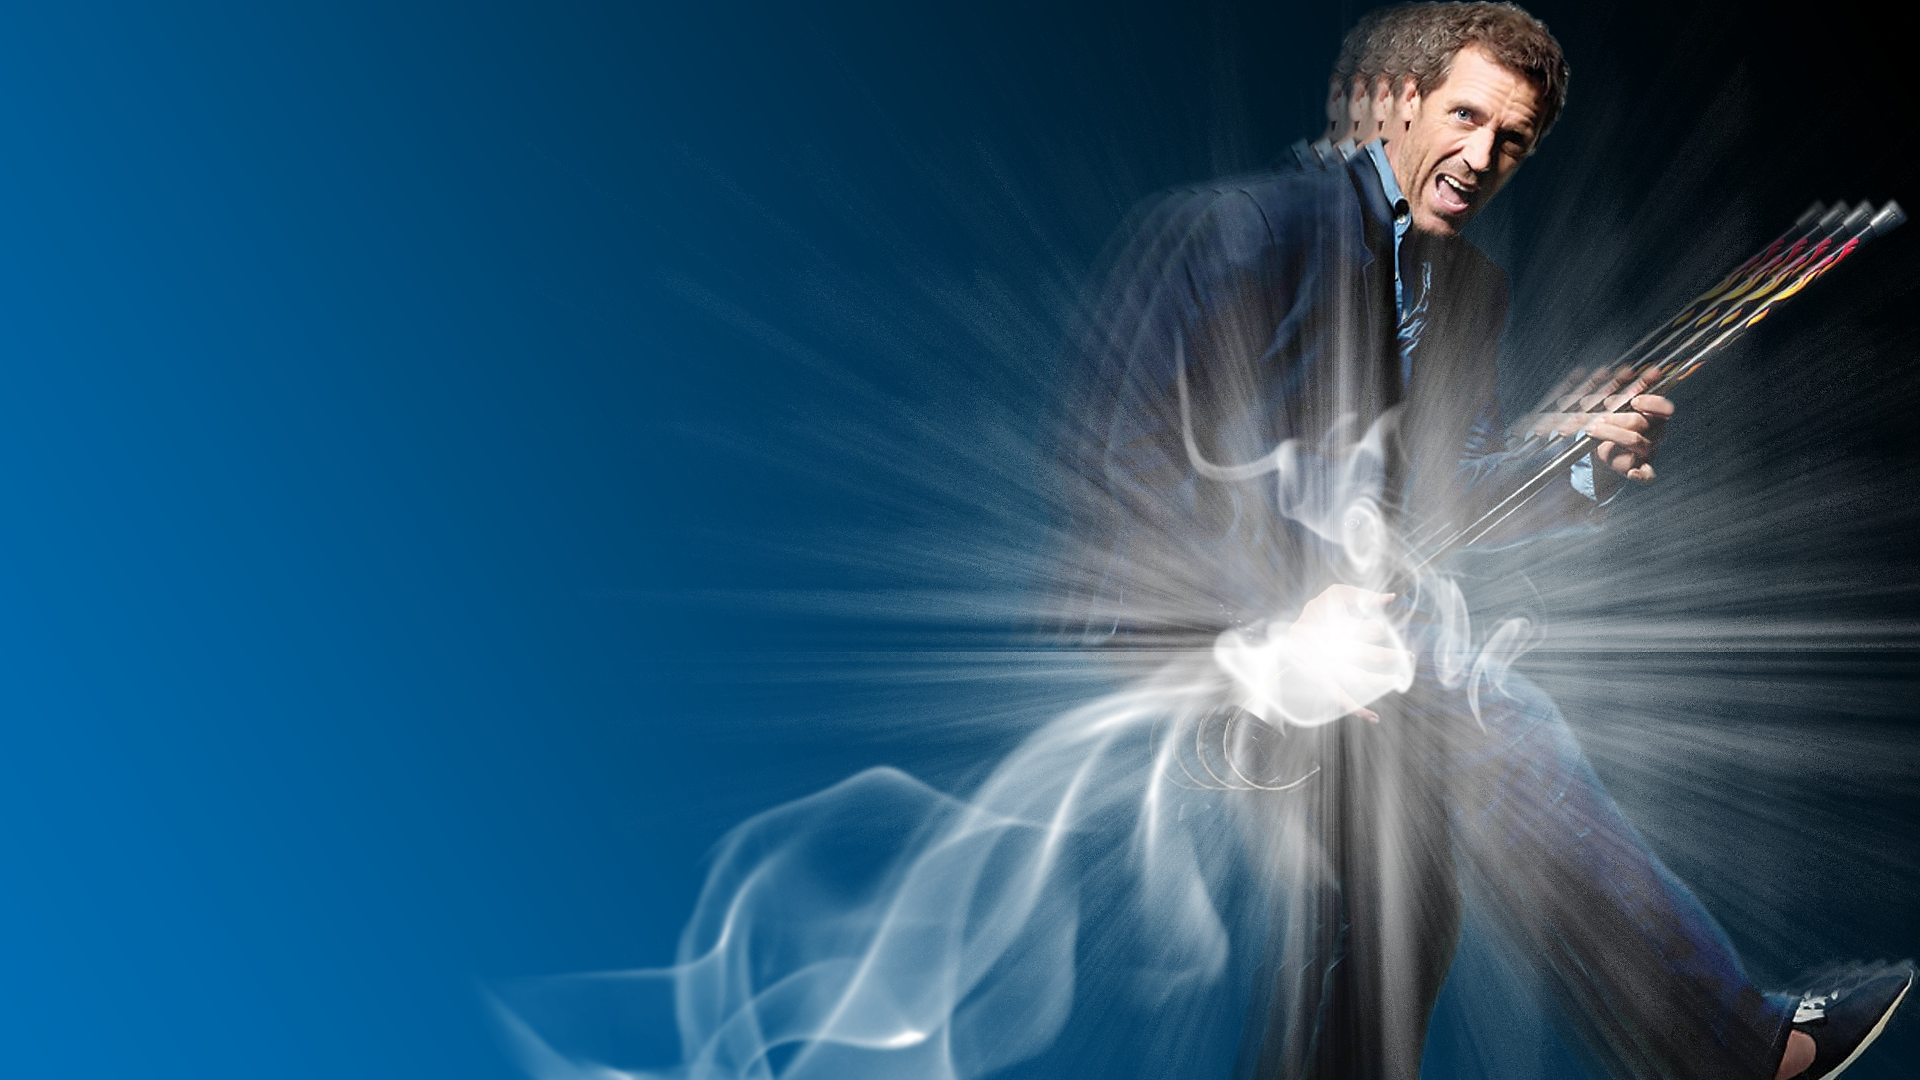 Dr House Wallpaper by Paprzyk1993png 1920x1080